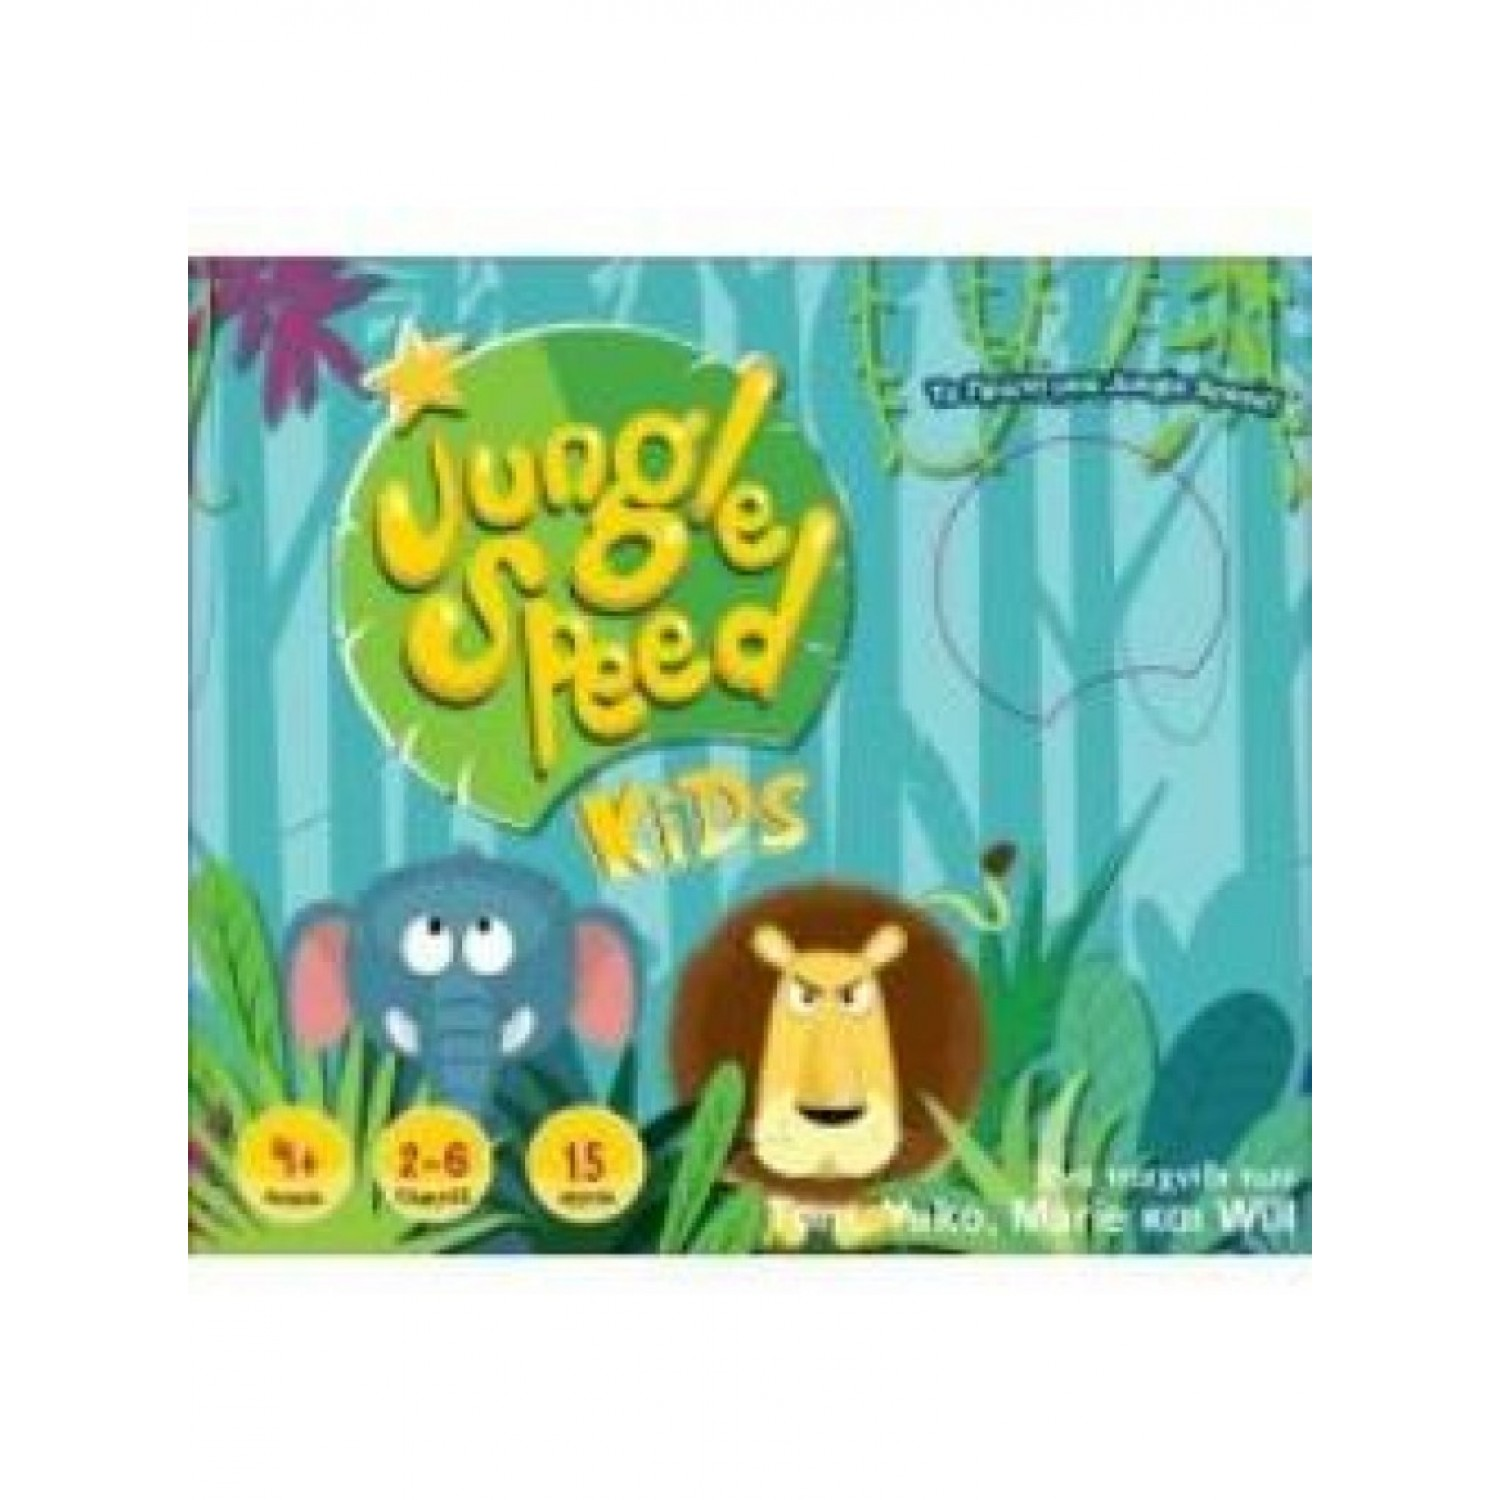 JUNGLE SPEED KIDS - ΚΑ112844